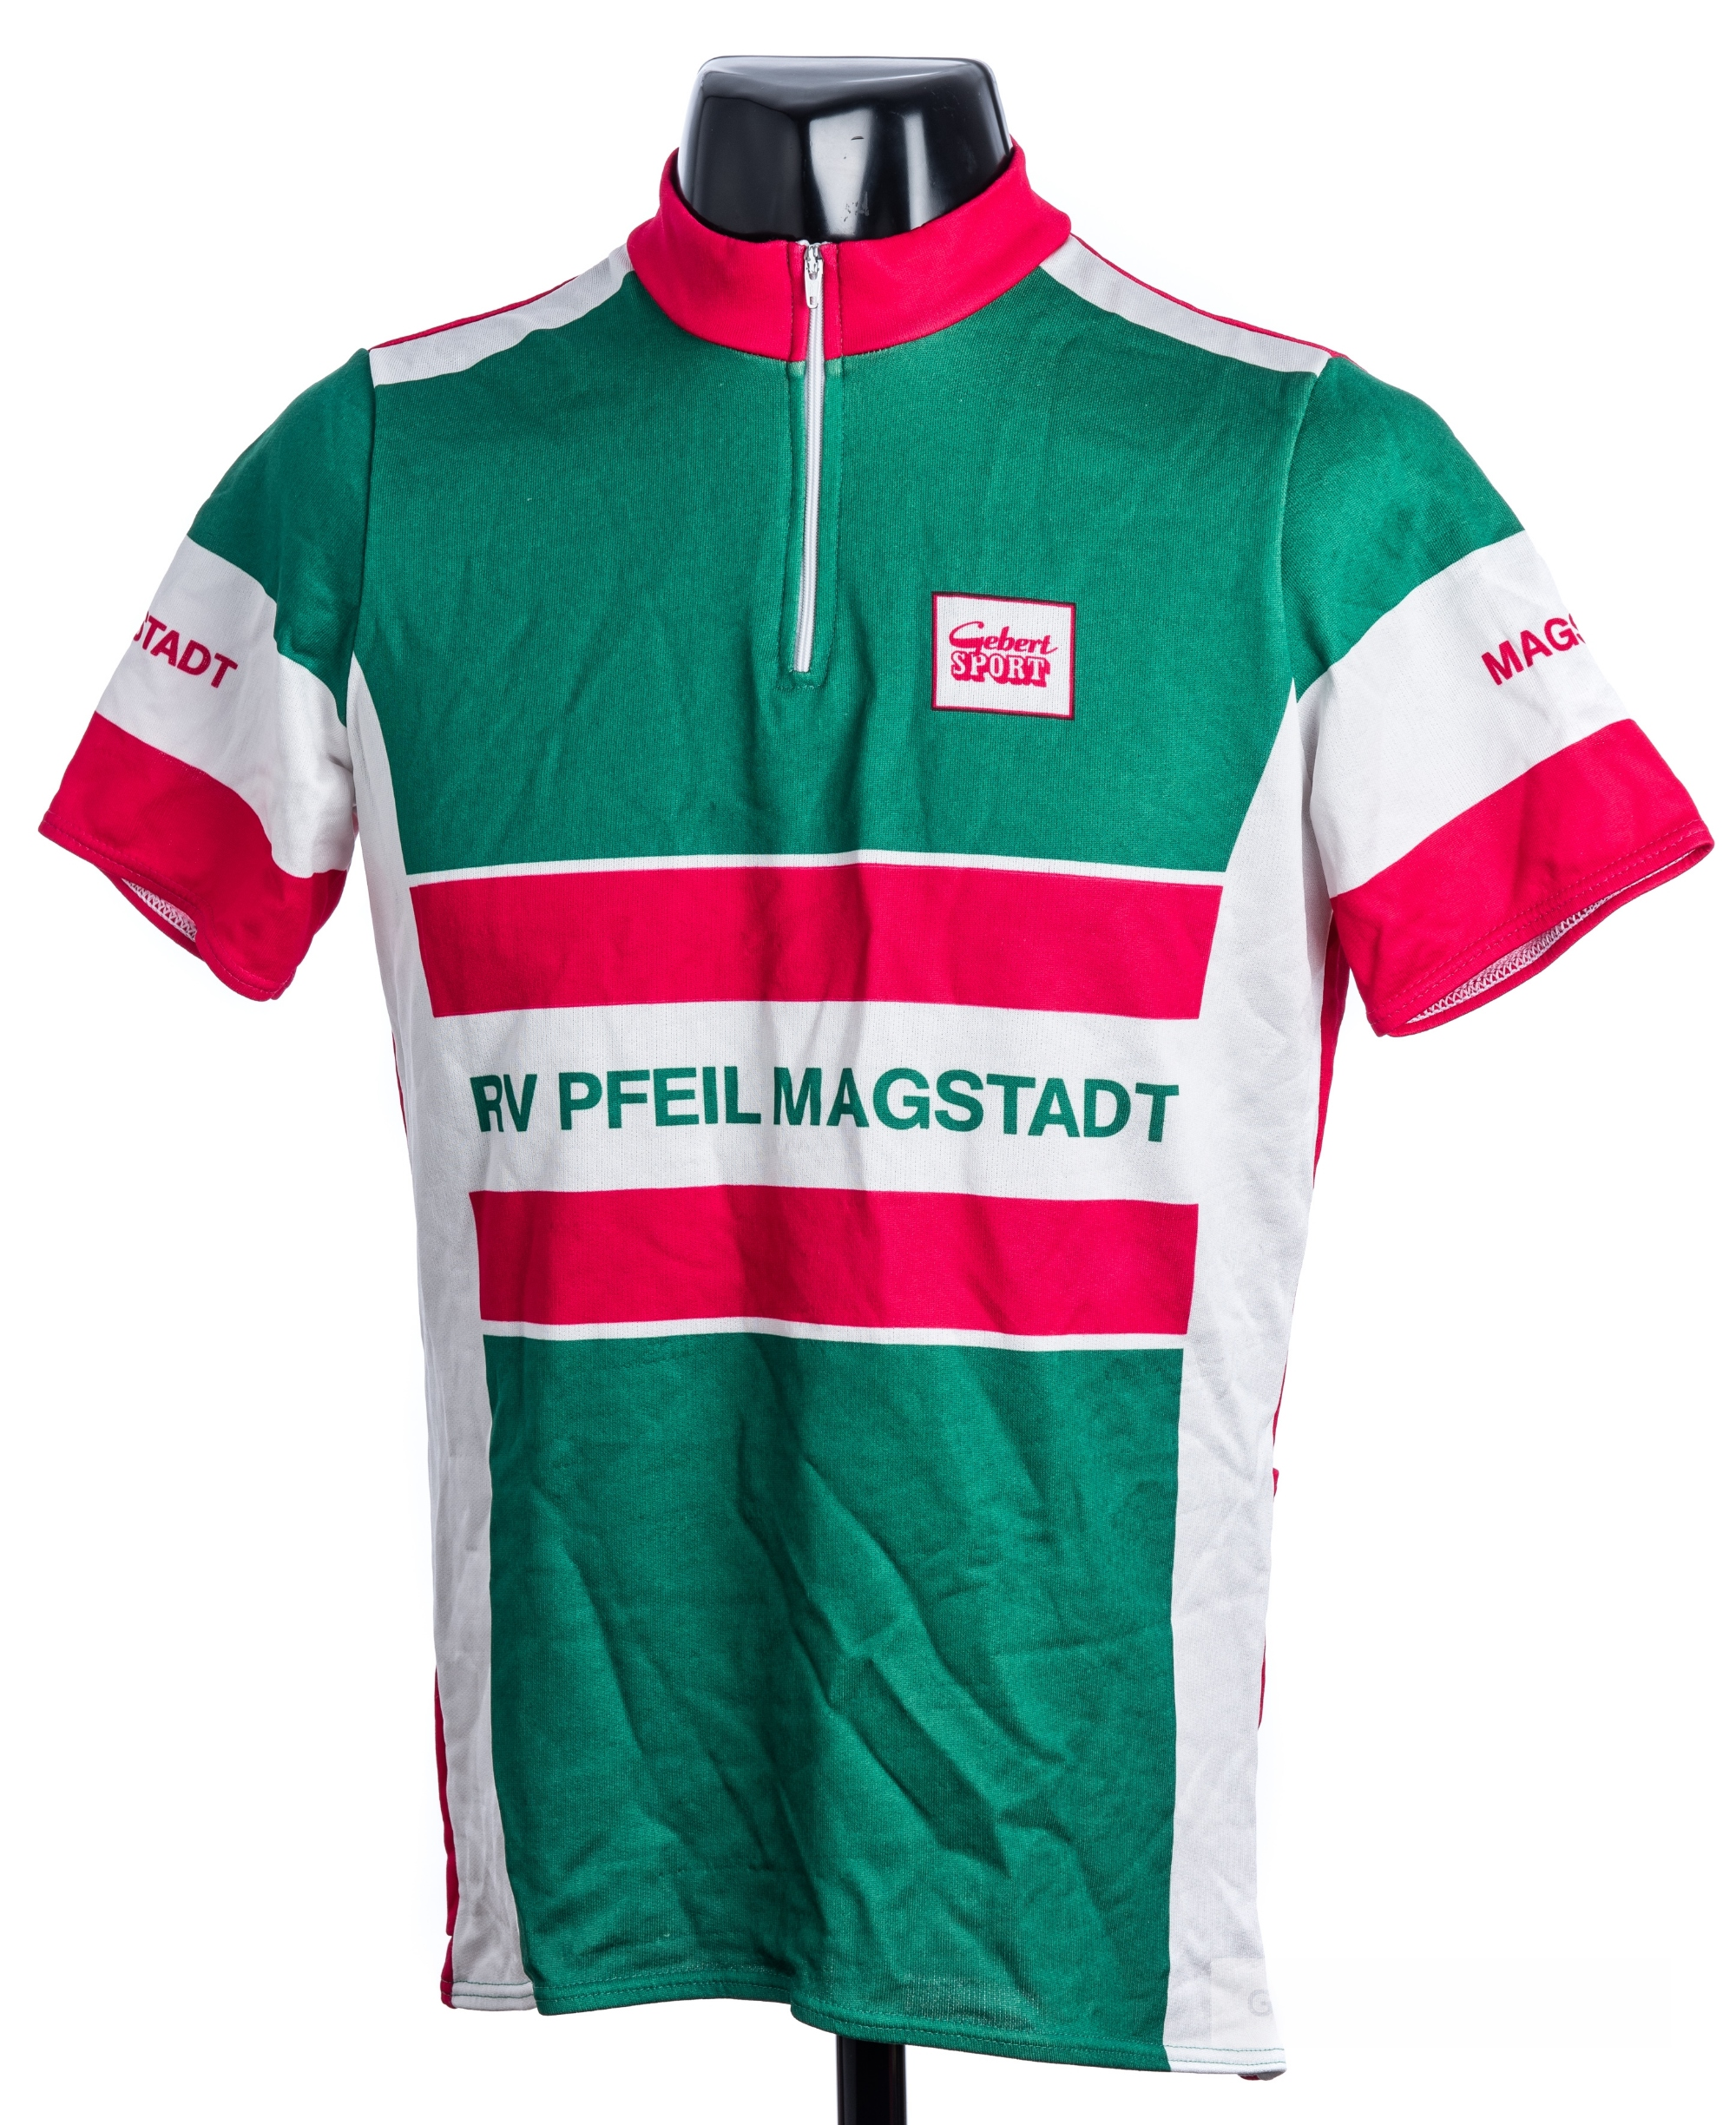 2005 green, white and pink German Gebert Sport RV Pfeil Magstadt Cycling race jersey, scarce, - Image 3 of 4